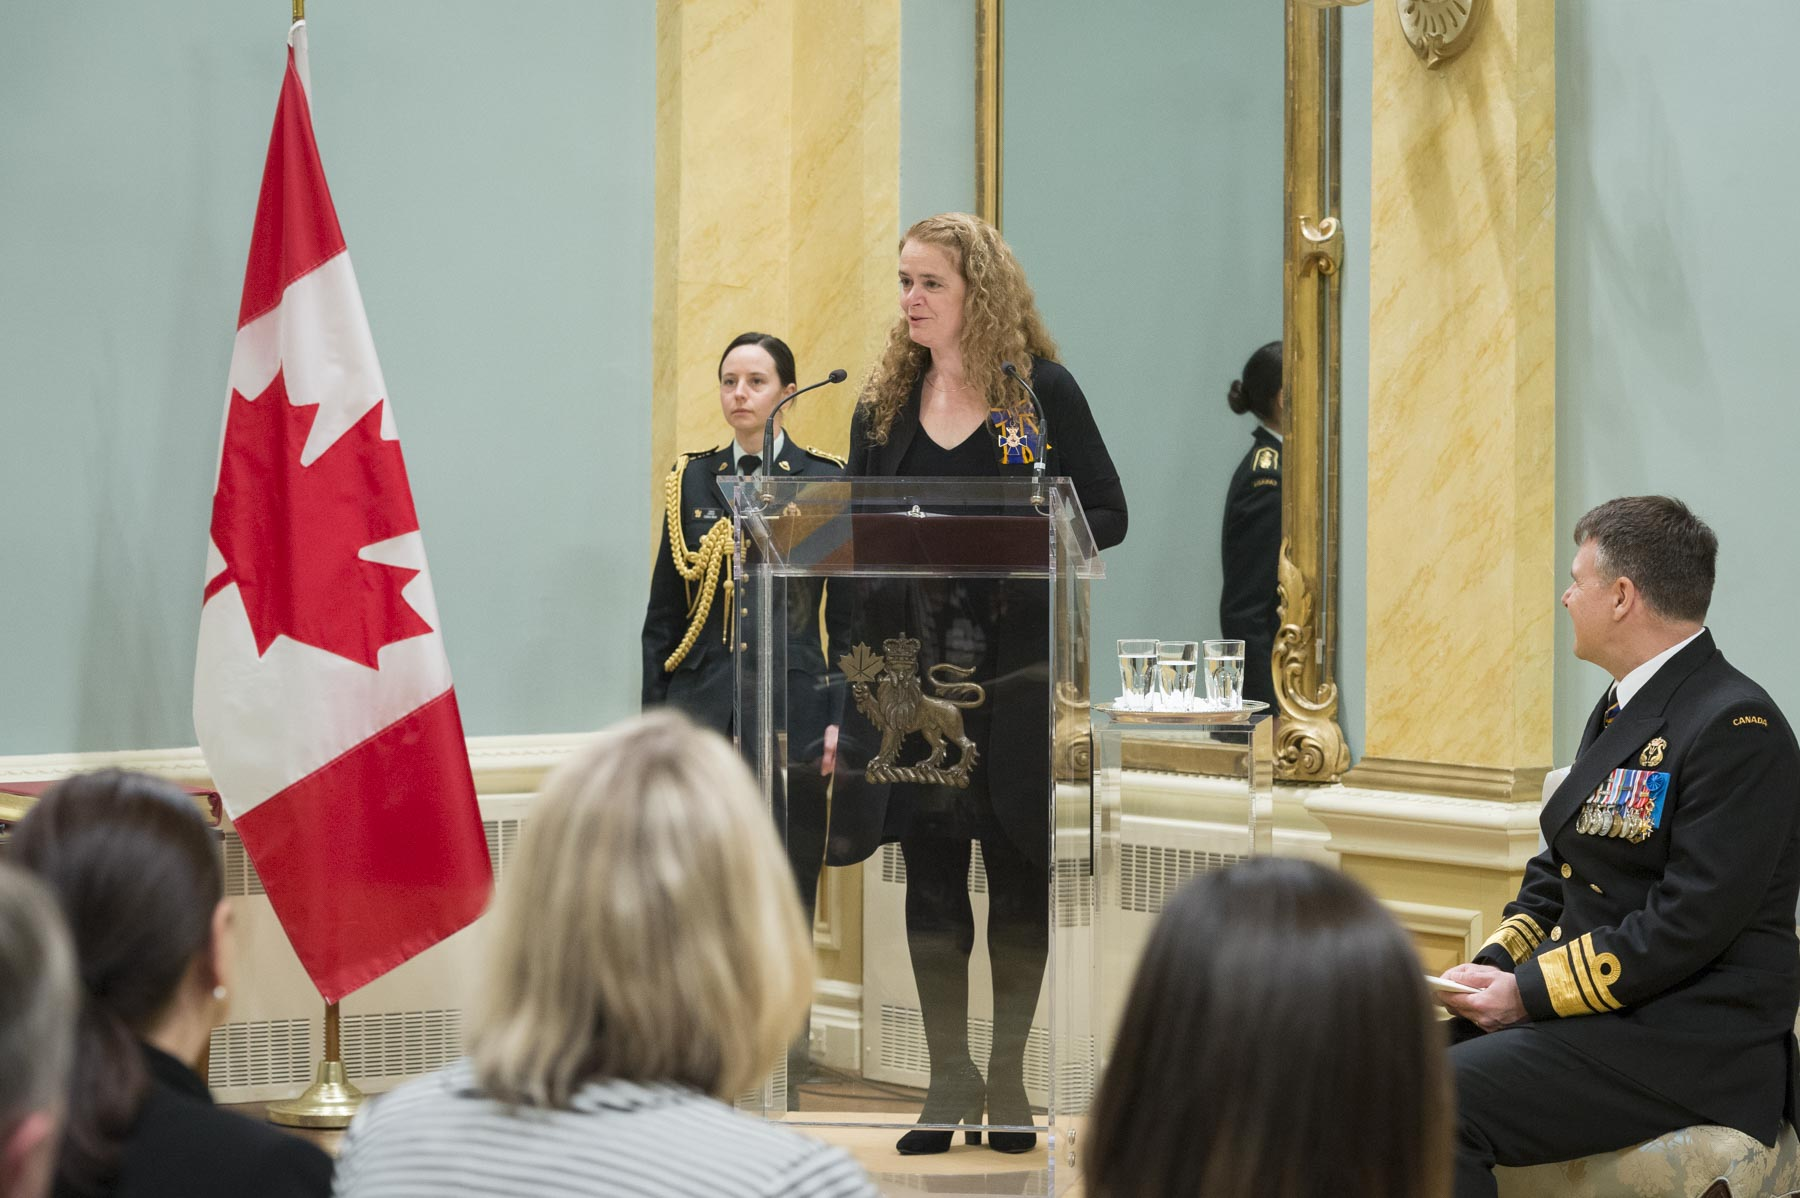 The ceremony, held at Rideau Hall, began with remarks from the Governor General who thanked the recipients for their incredible contributions.